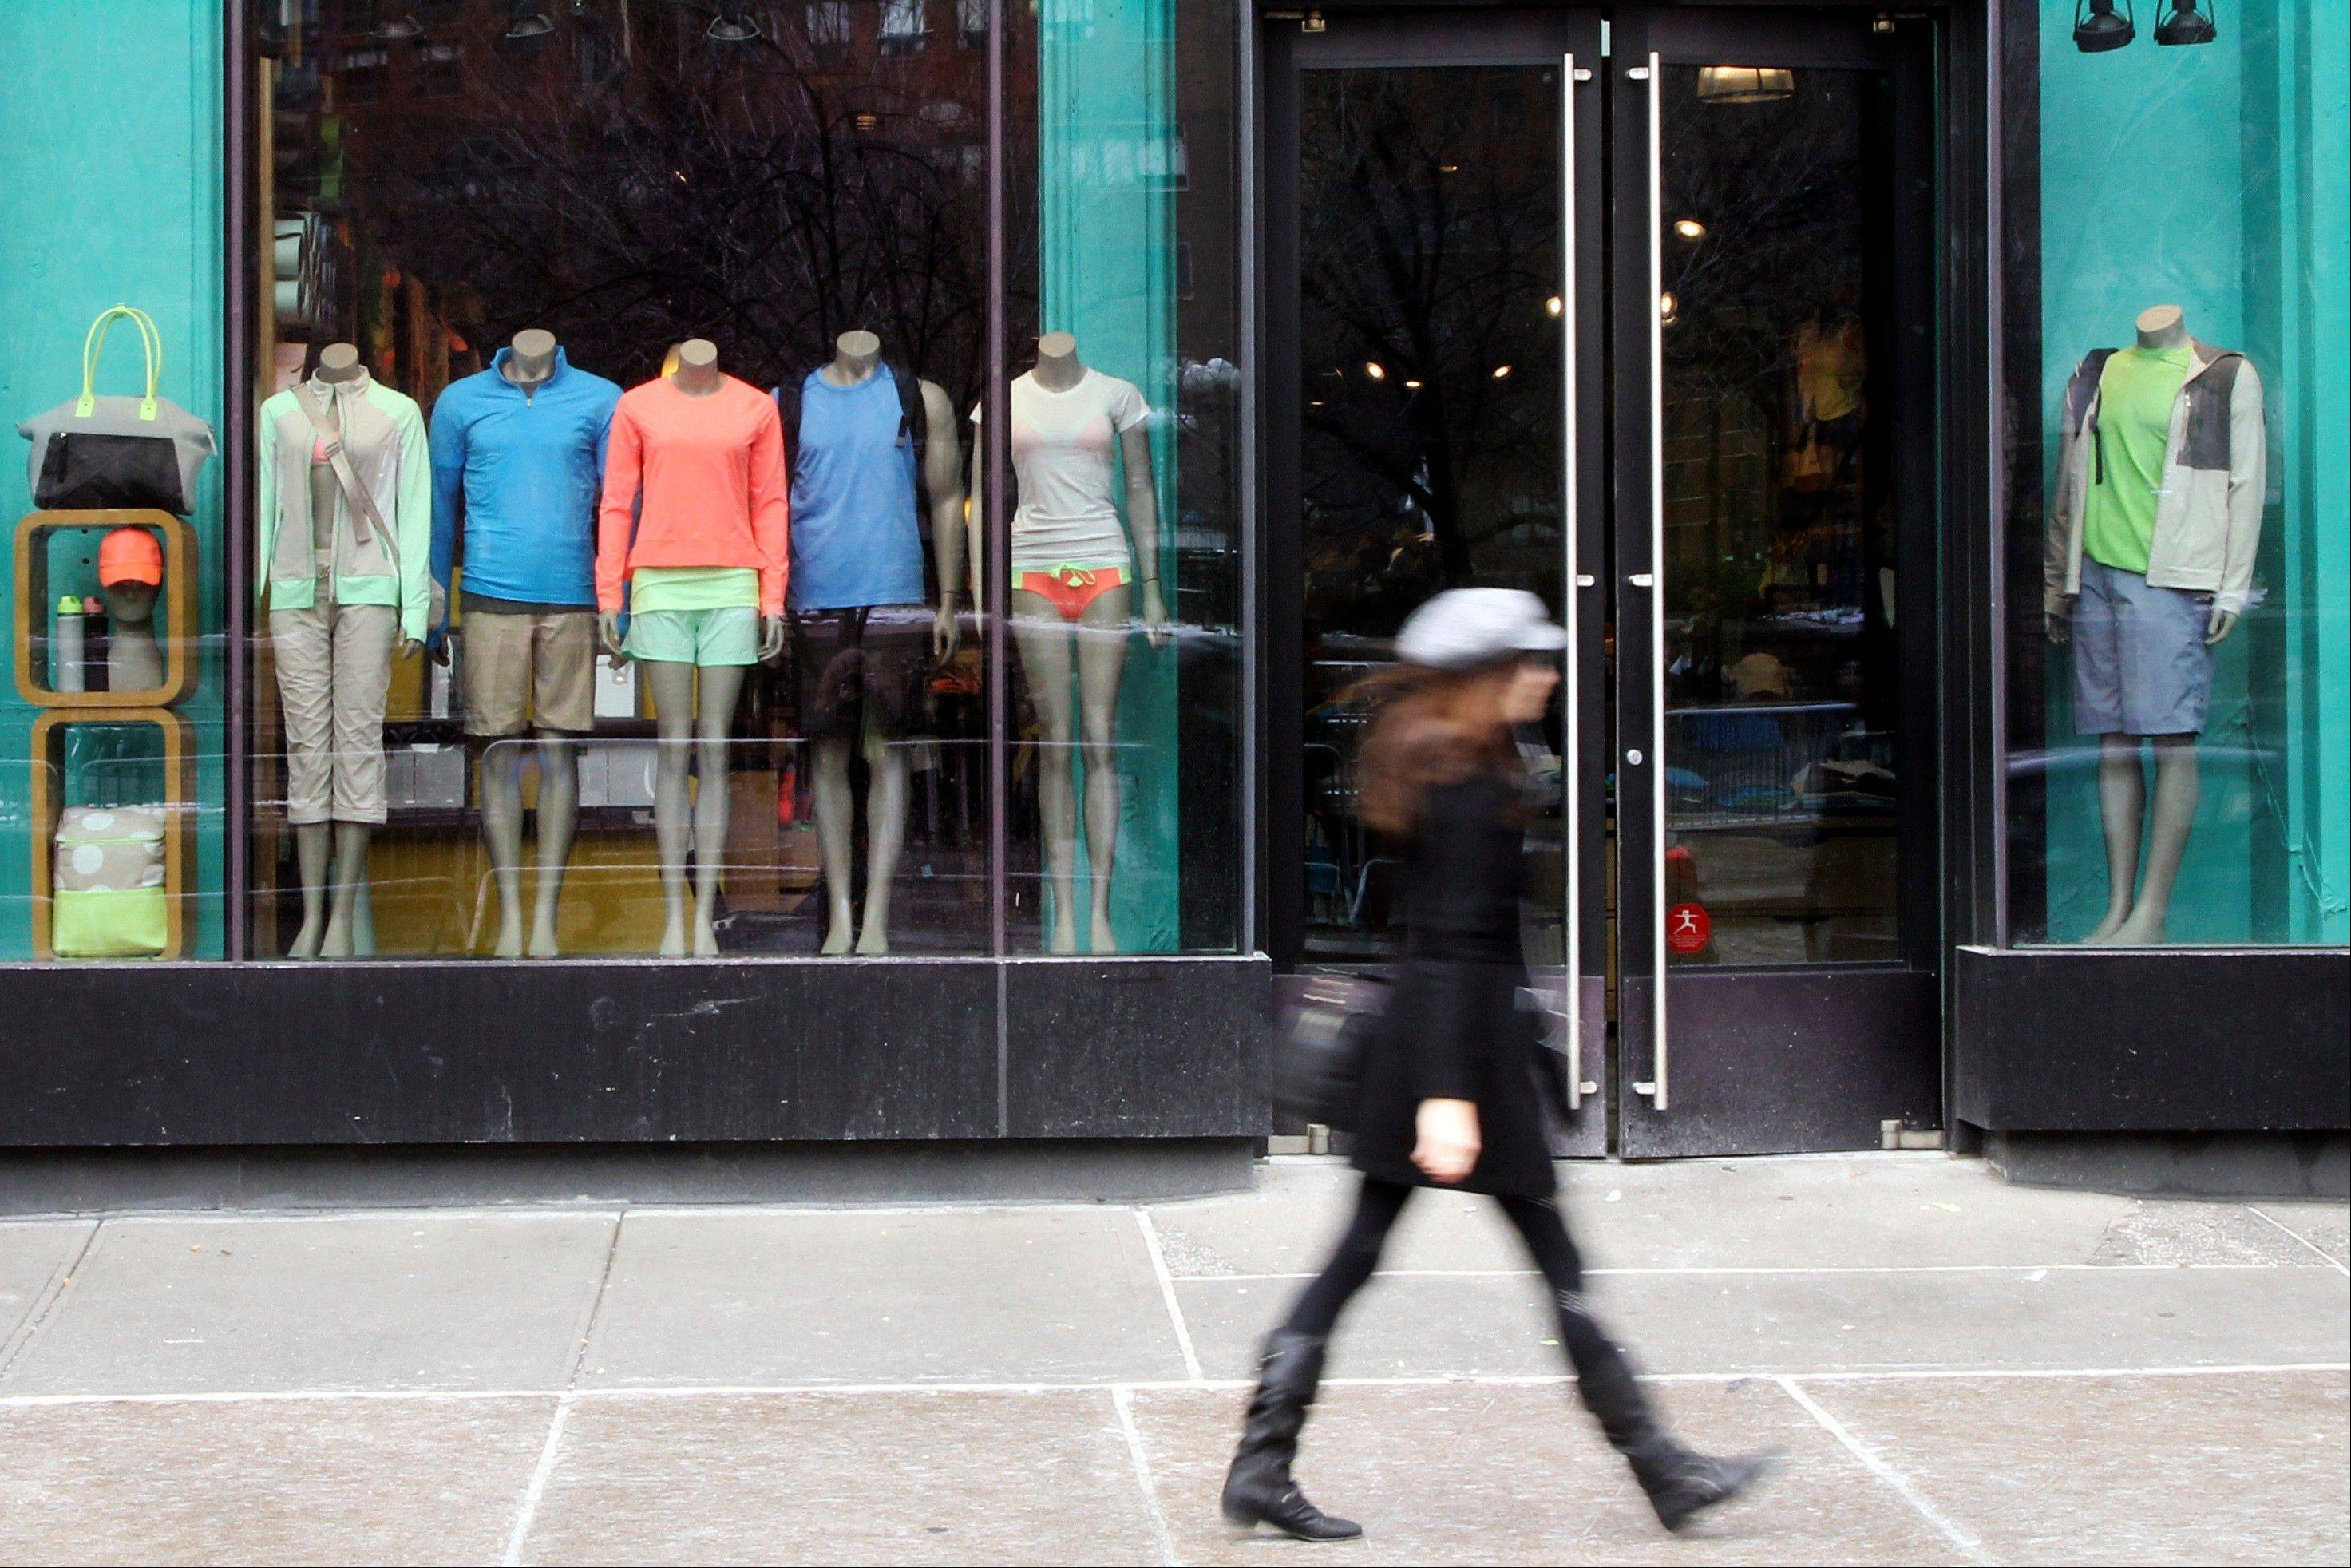 This March 19, 2013 file photo shows a pedestrian walking past the Lululemon Athletica store at Union Square in New York. Lululemon yanked its popular black yoga pants from store shelves after it found that the sheer material used was revealing too much of its loyal customers.